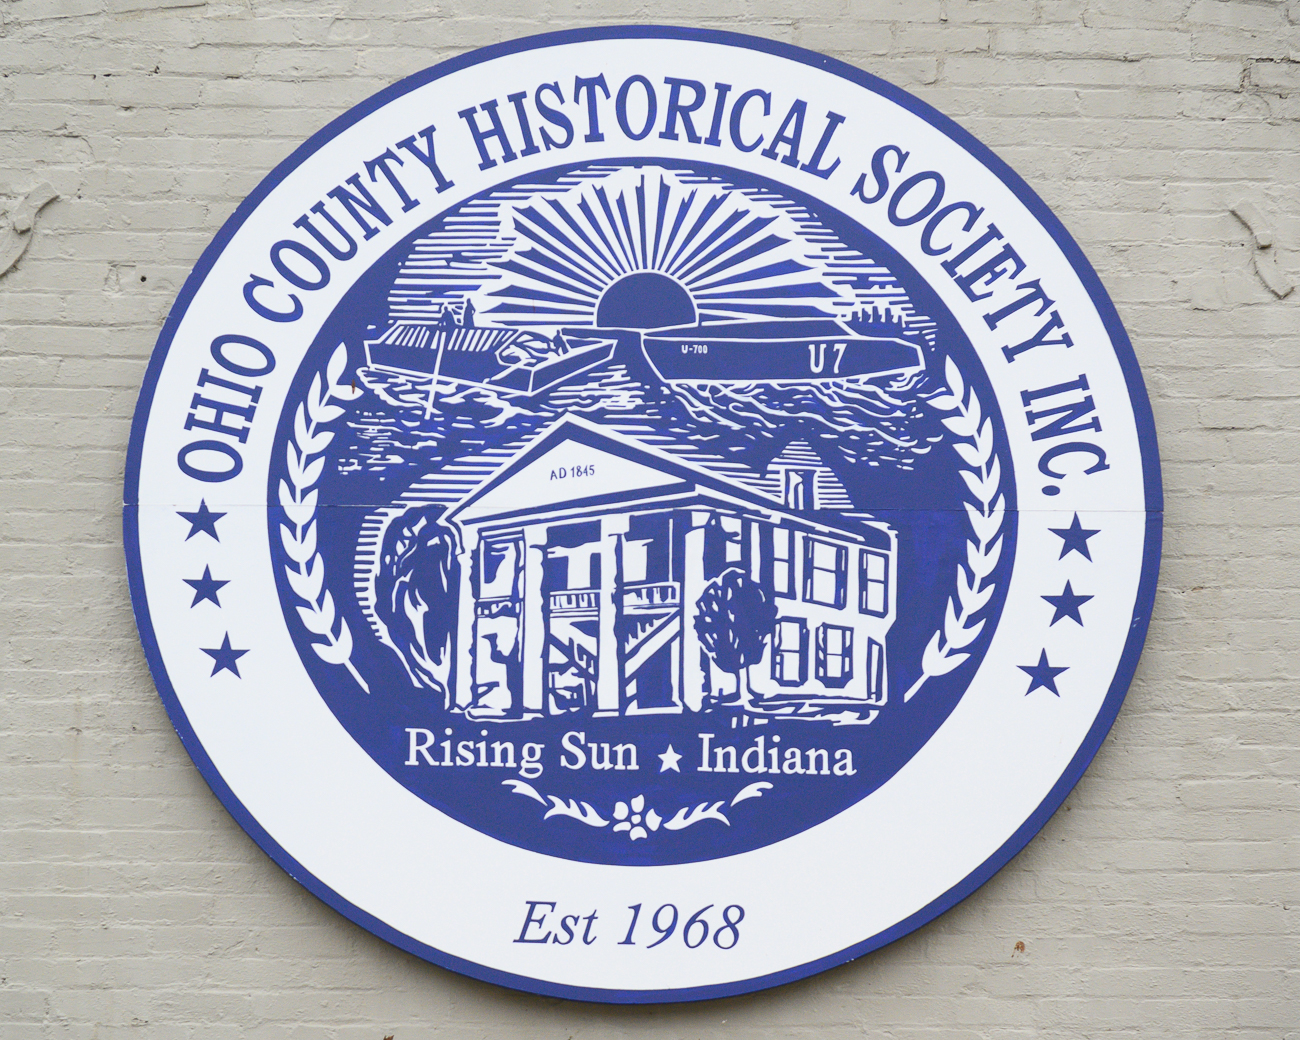 The seal of the Ohio County Historical Society / Image: Phil Armstrong, Cincinnati Refined // Published: 1.7.20